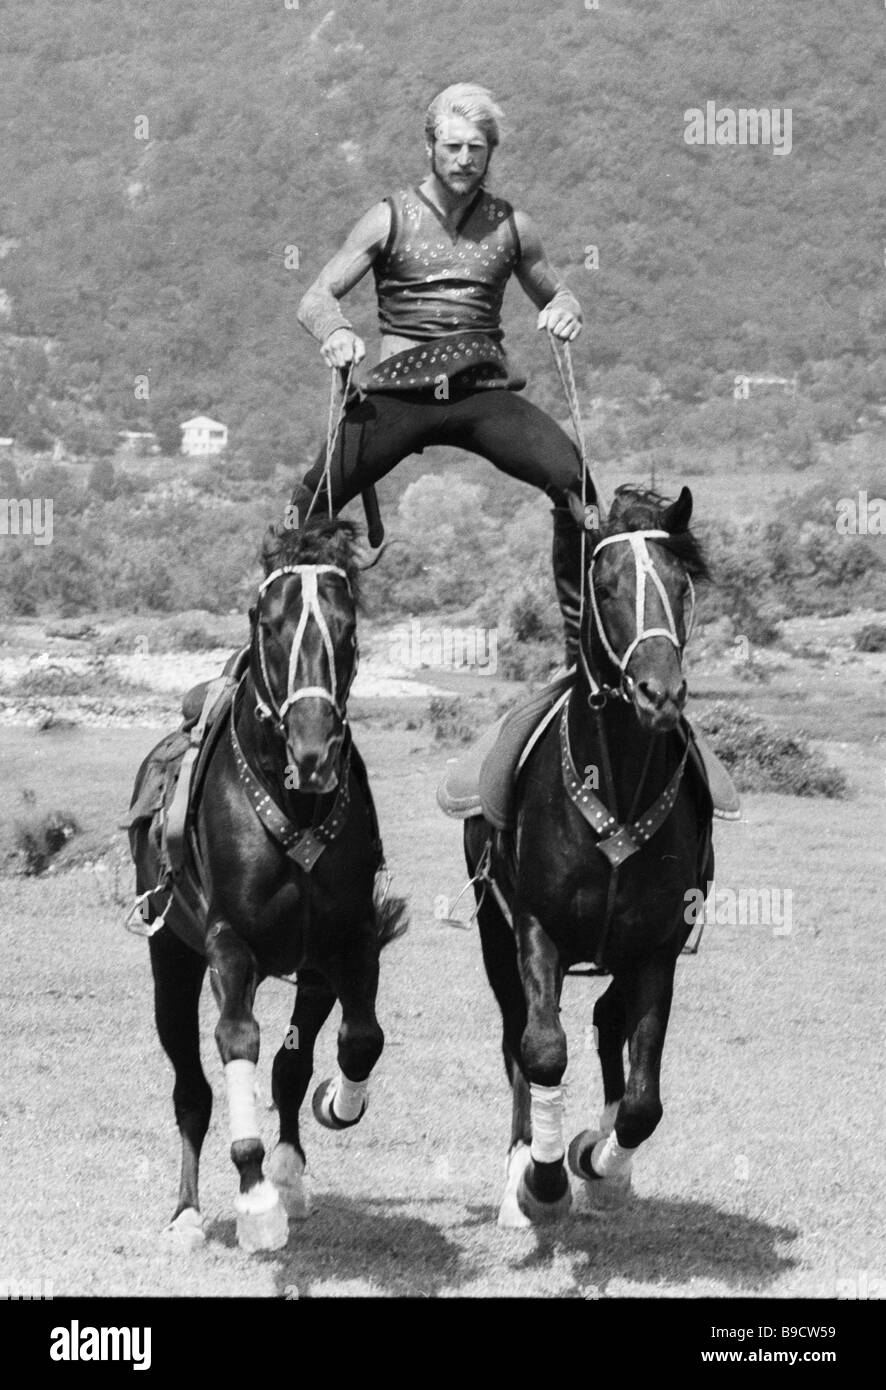 An actor with the Equestrian Theater of Stunt Performers training - Stock Image